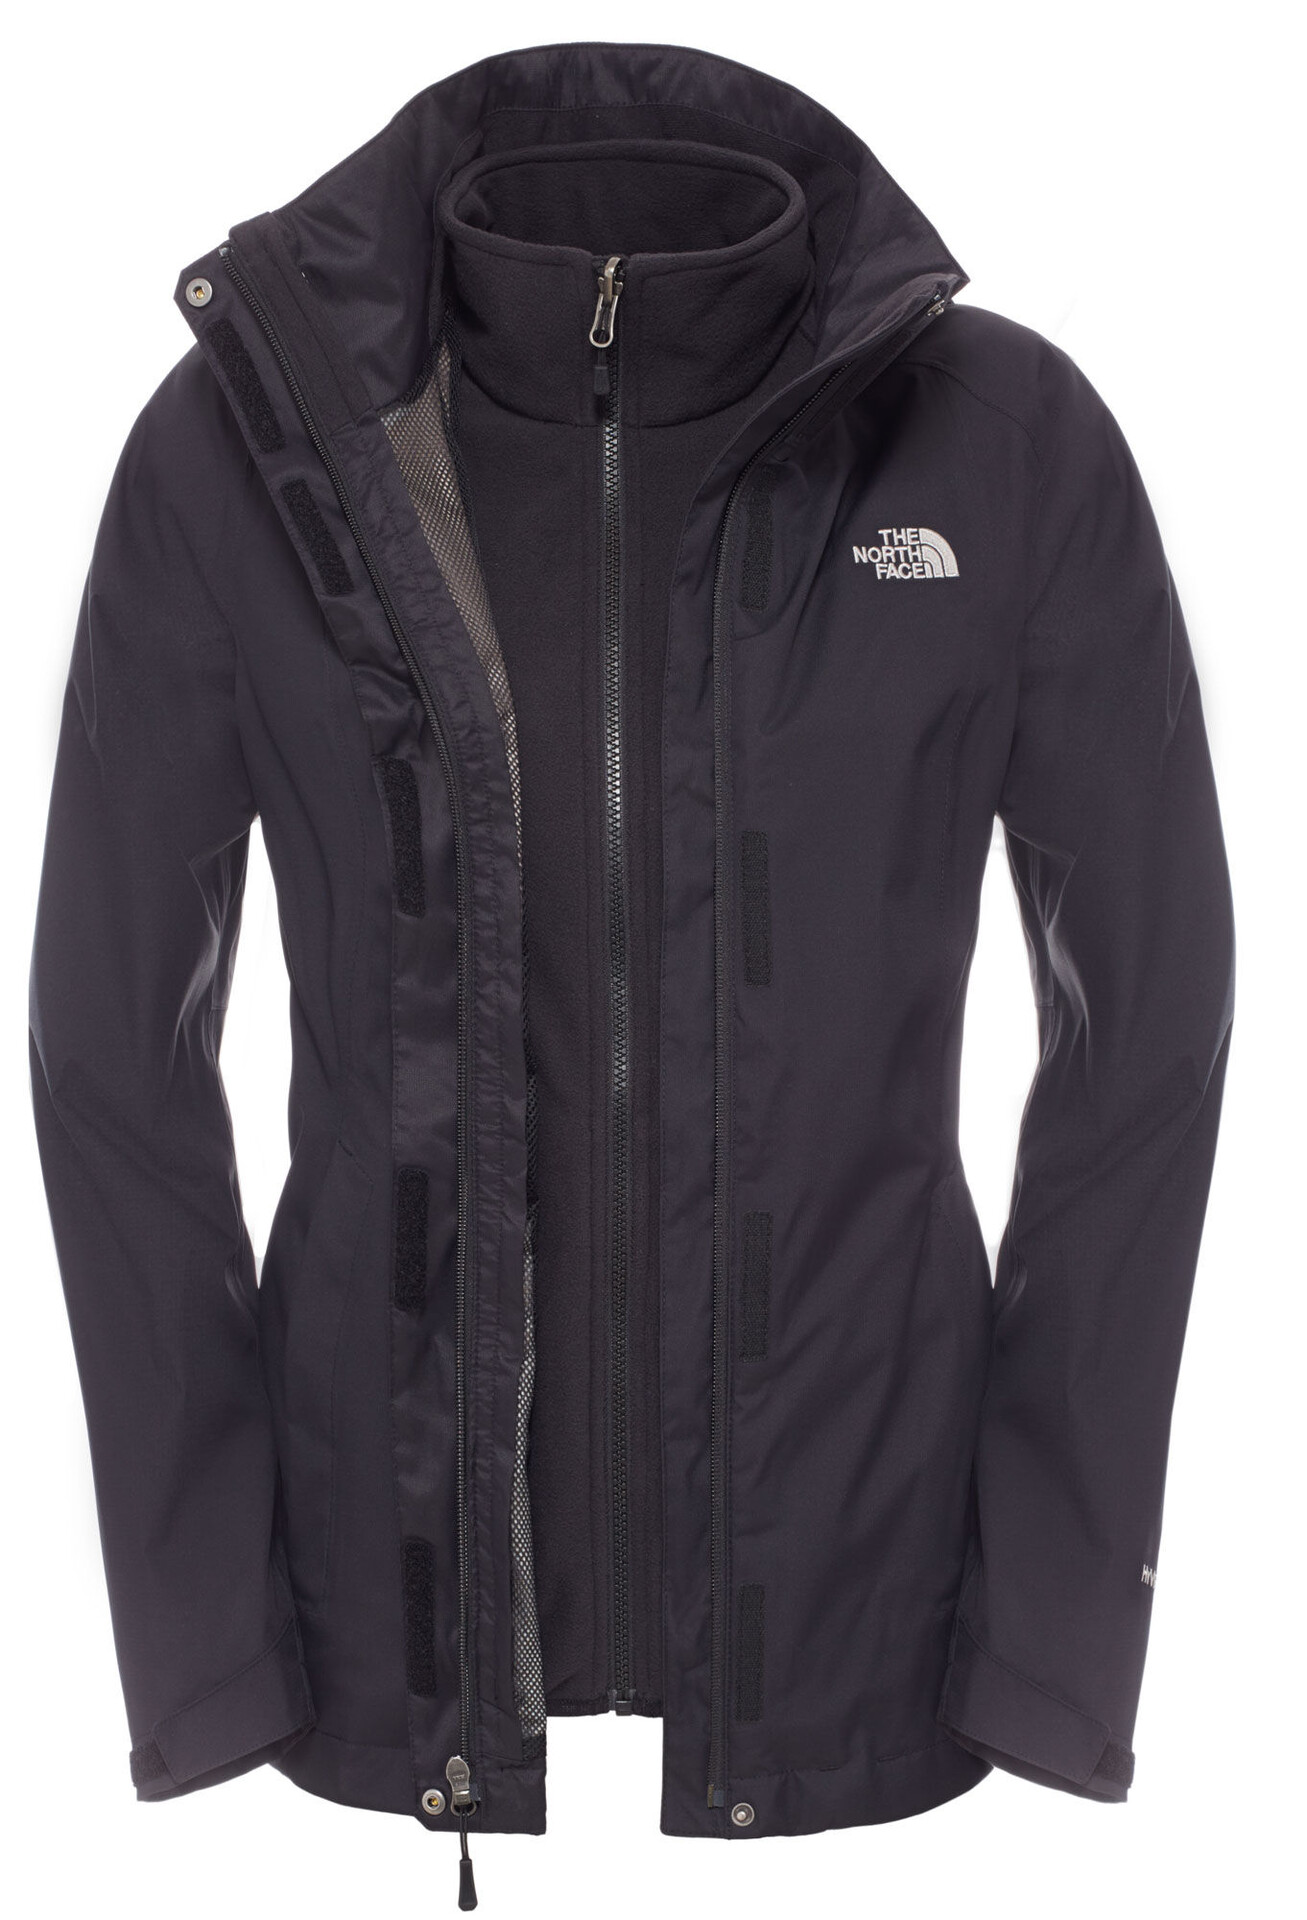 The North Face Evolve II Veste Triclimate Femme, tnf black